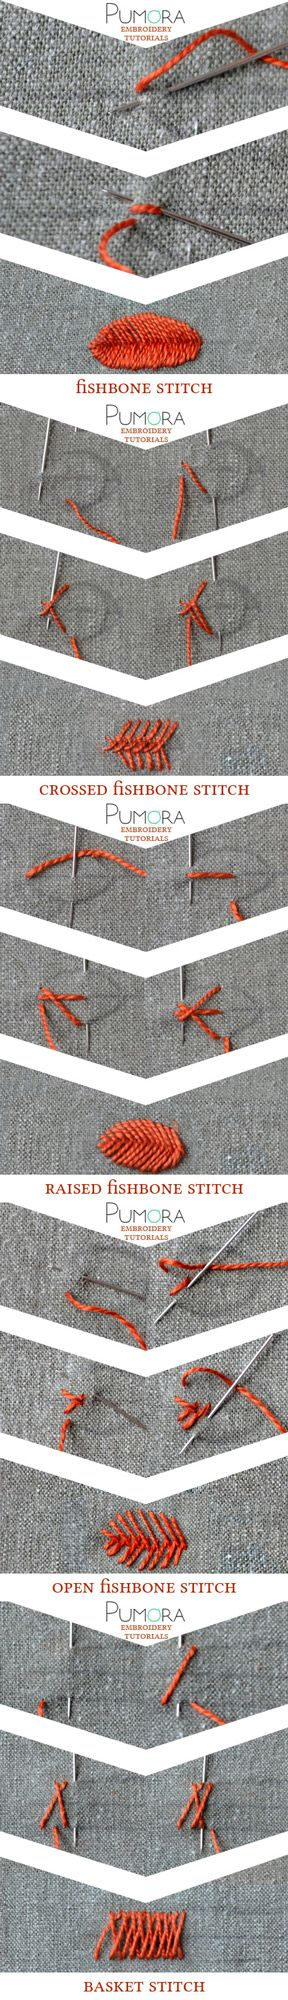 Pumora's embroidery stitch-lexicon: the fishbone stitch